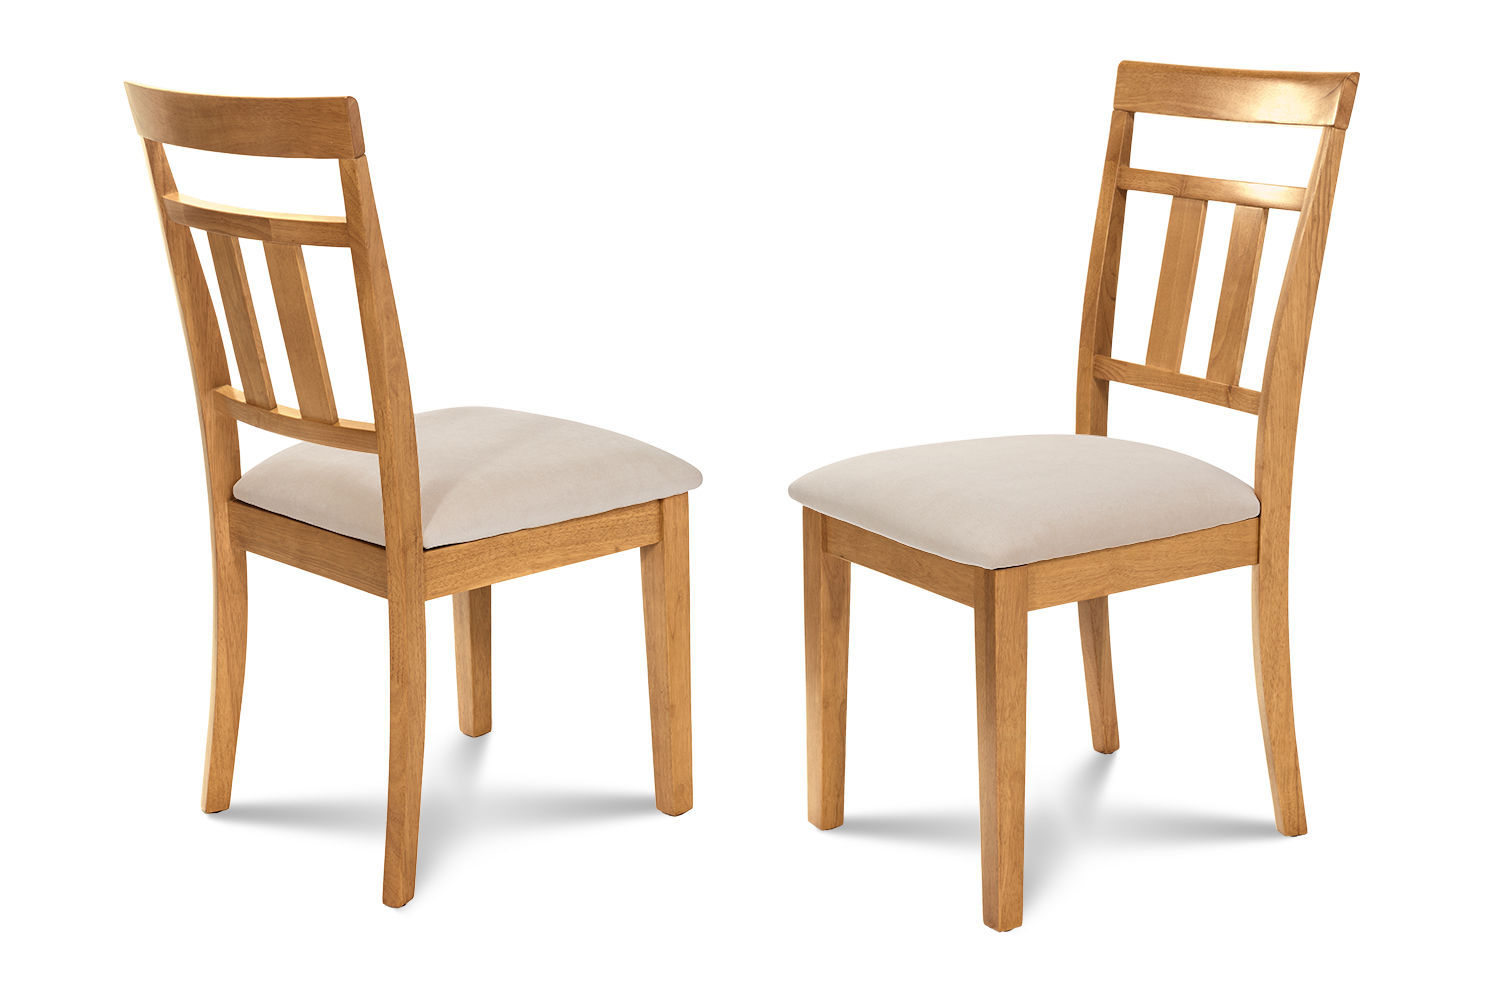 SET OF 2 KITCHEN DINING SIDE CHAIRS w/ SOFT-PADDED SEAT IN  OAK FINISH